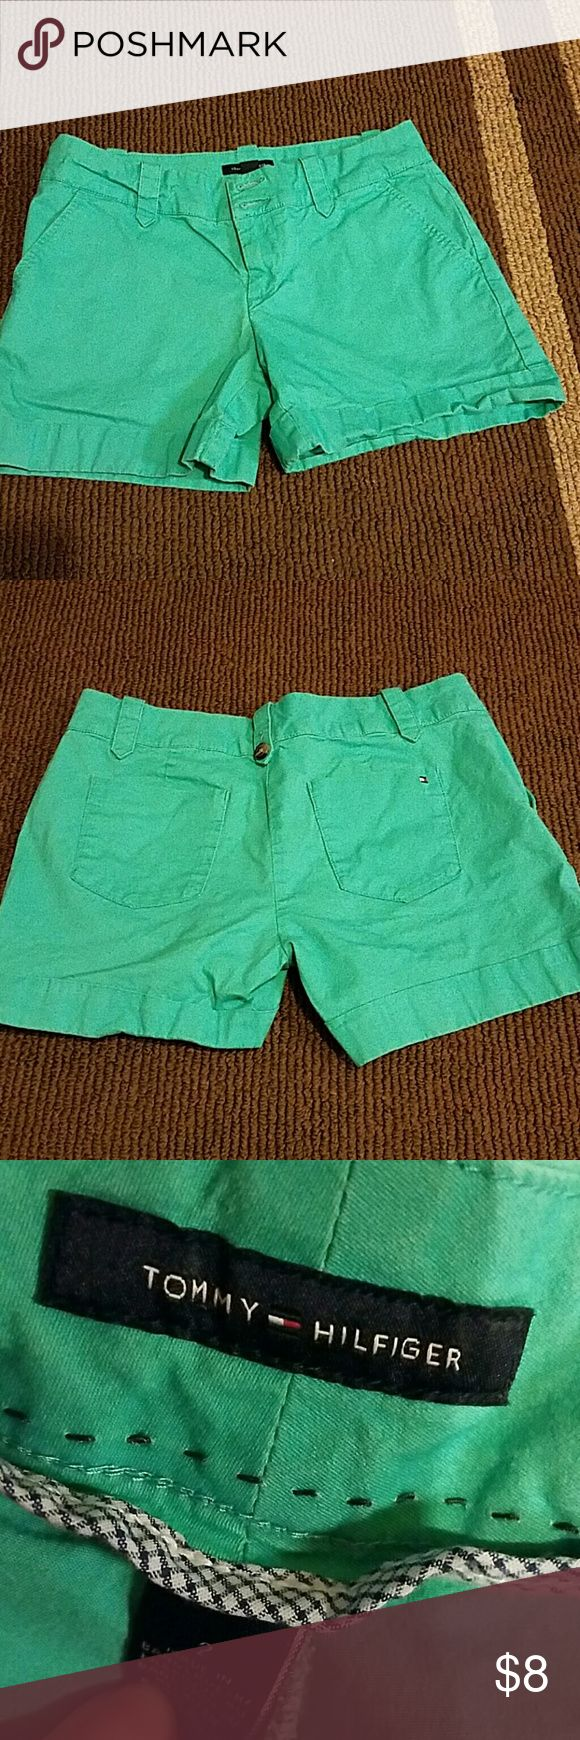 Tommy Hilfiger shorts Turquoise shorts. No stains. Needs ironed. Tommy Hilfiger Shorts